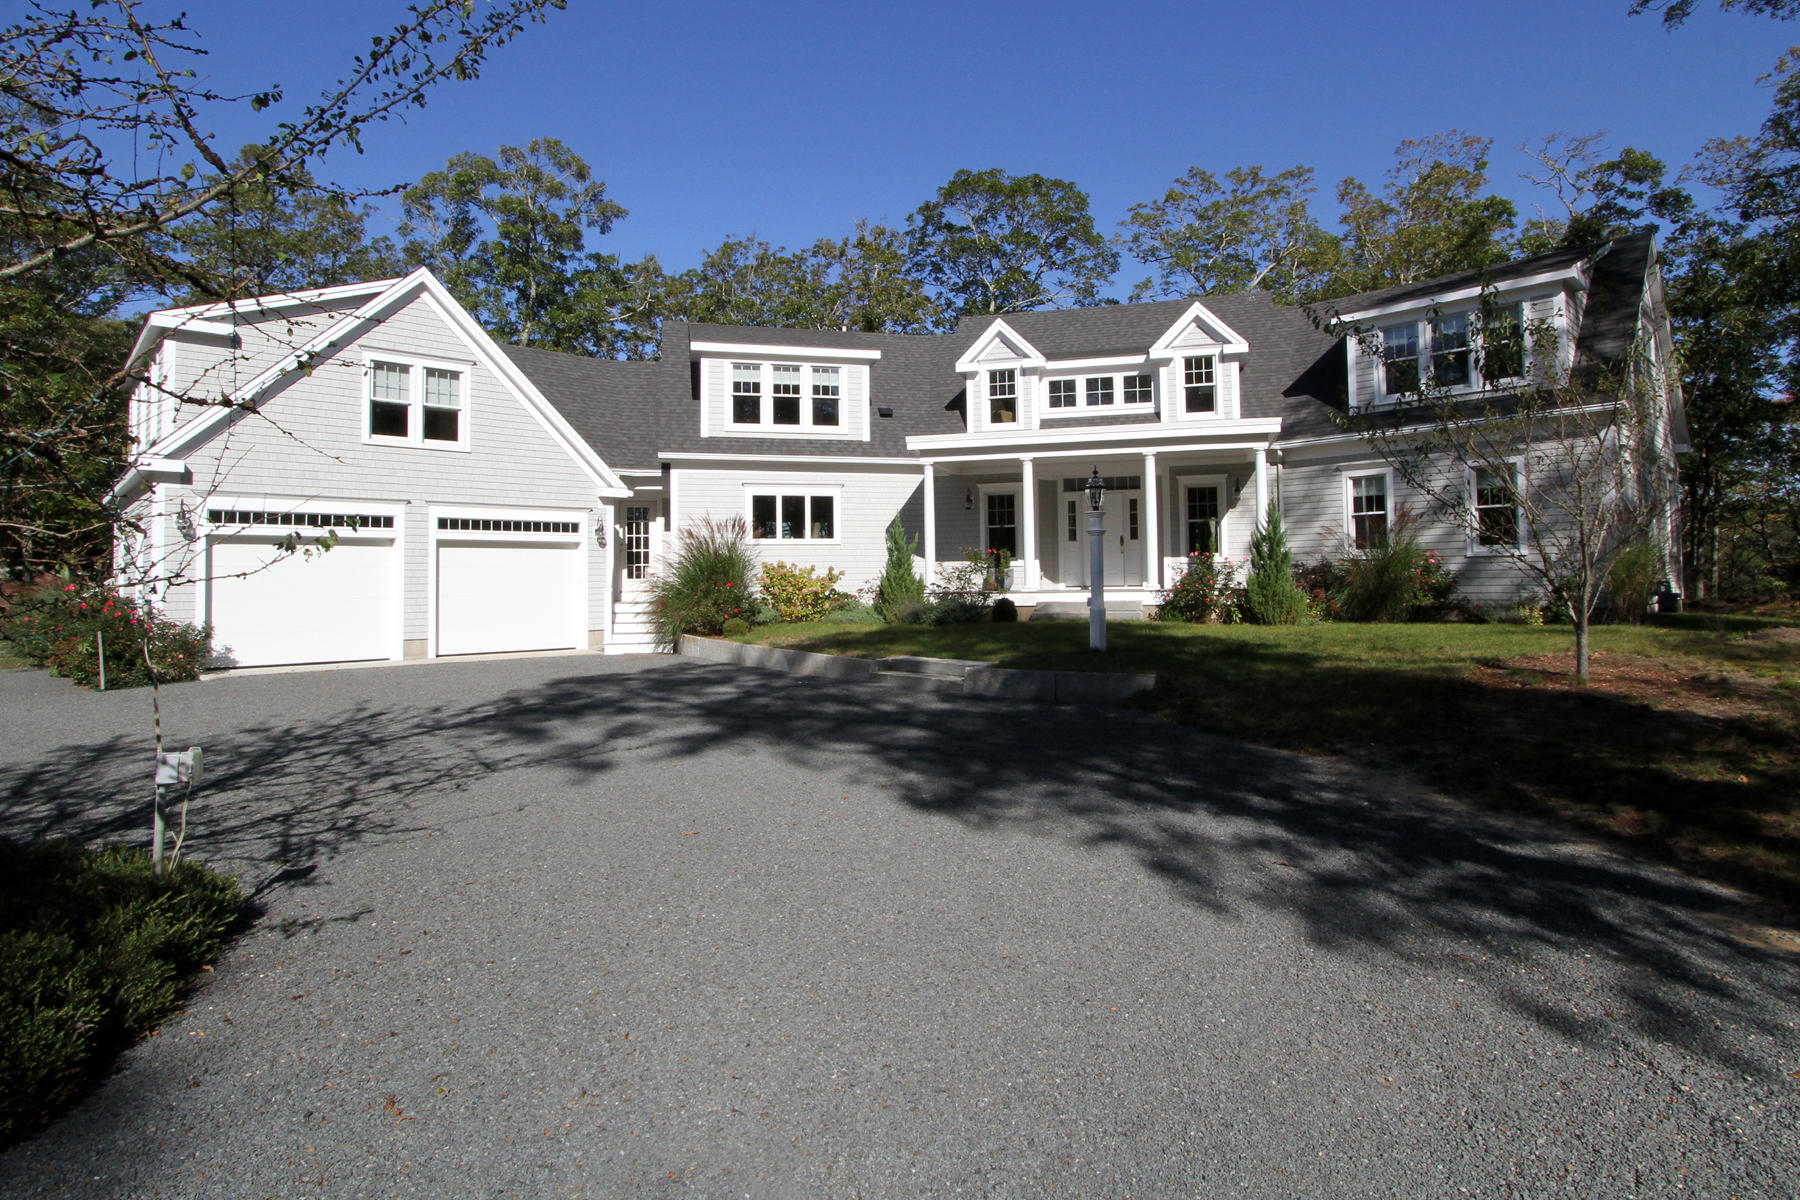 Single Family Home for Active at 40 Skaket Way, Brewster, MA 40 Skaket Way Brewster, Massachusetts 02631 United States